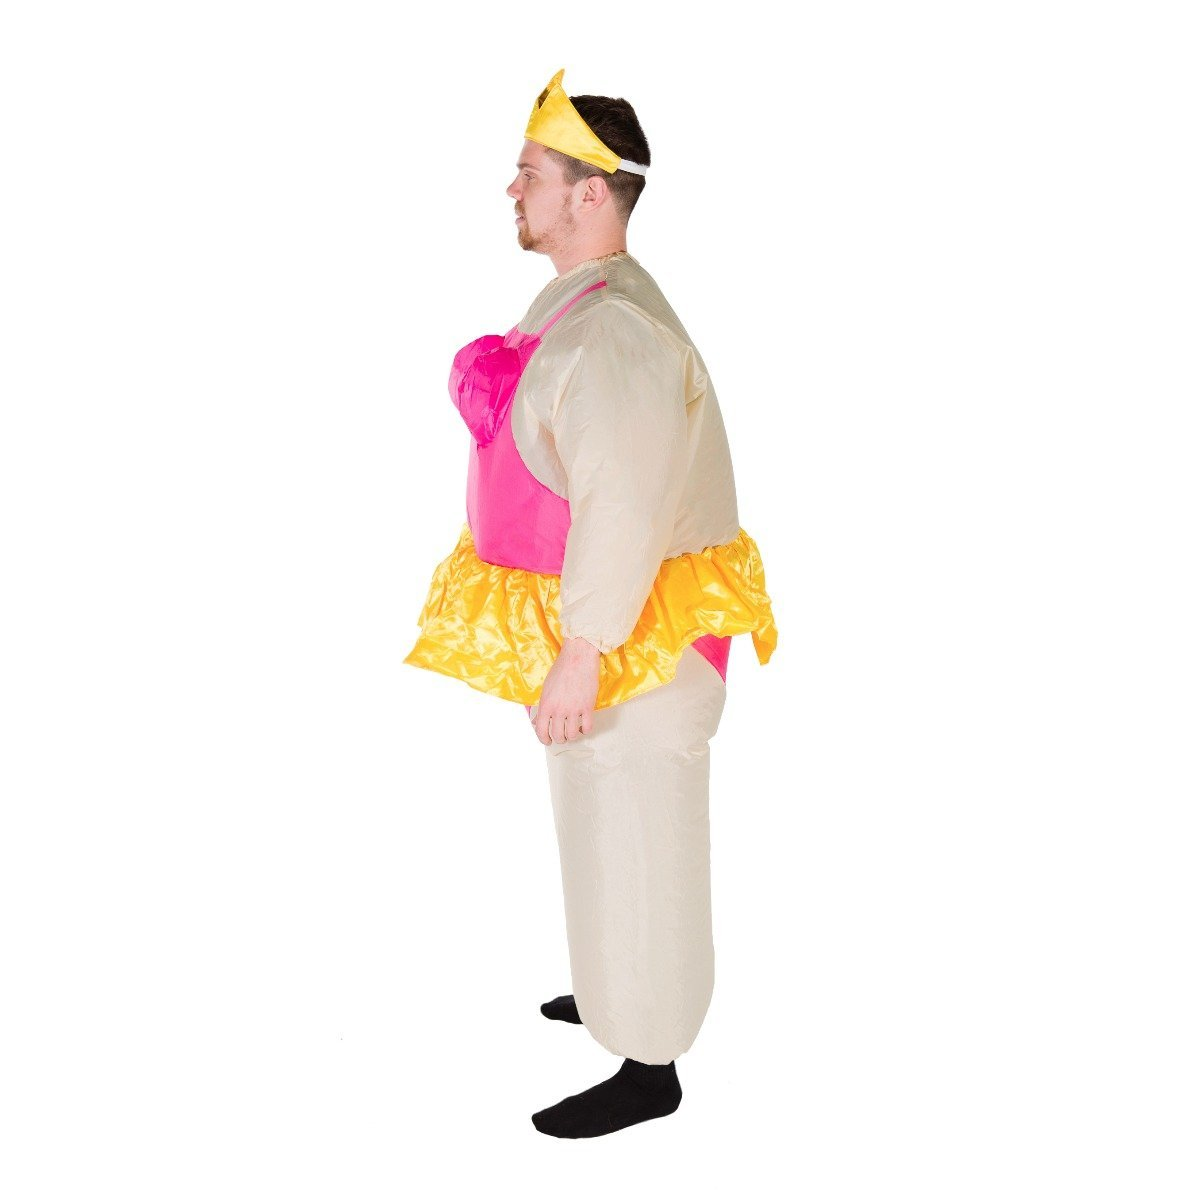 Bodysocks - Inflatable Ballerina Costume